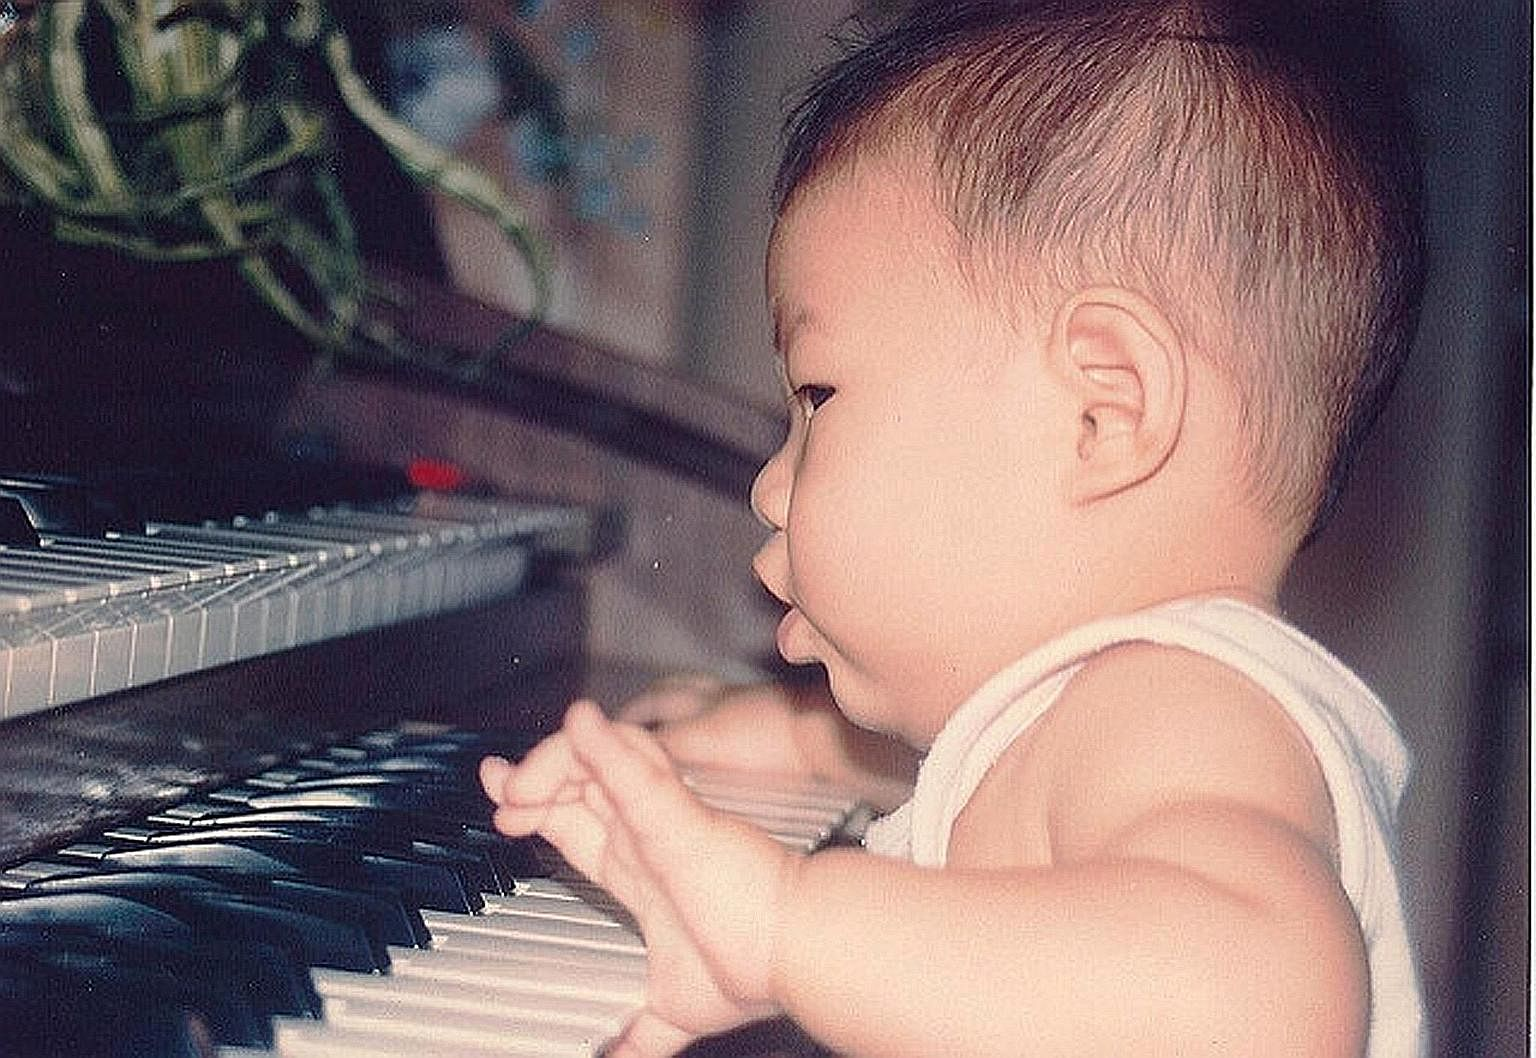 When Dr Tan was five, he attended a Yamaha keyboard class. He enjoyed it so much that his parents started him on private lessons. The Community Chest TrueHearts show is one of many charity events that Dr Tan has performed for. Dr Tan at the Yong Siew